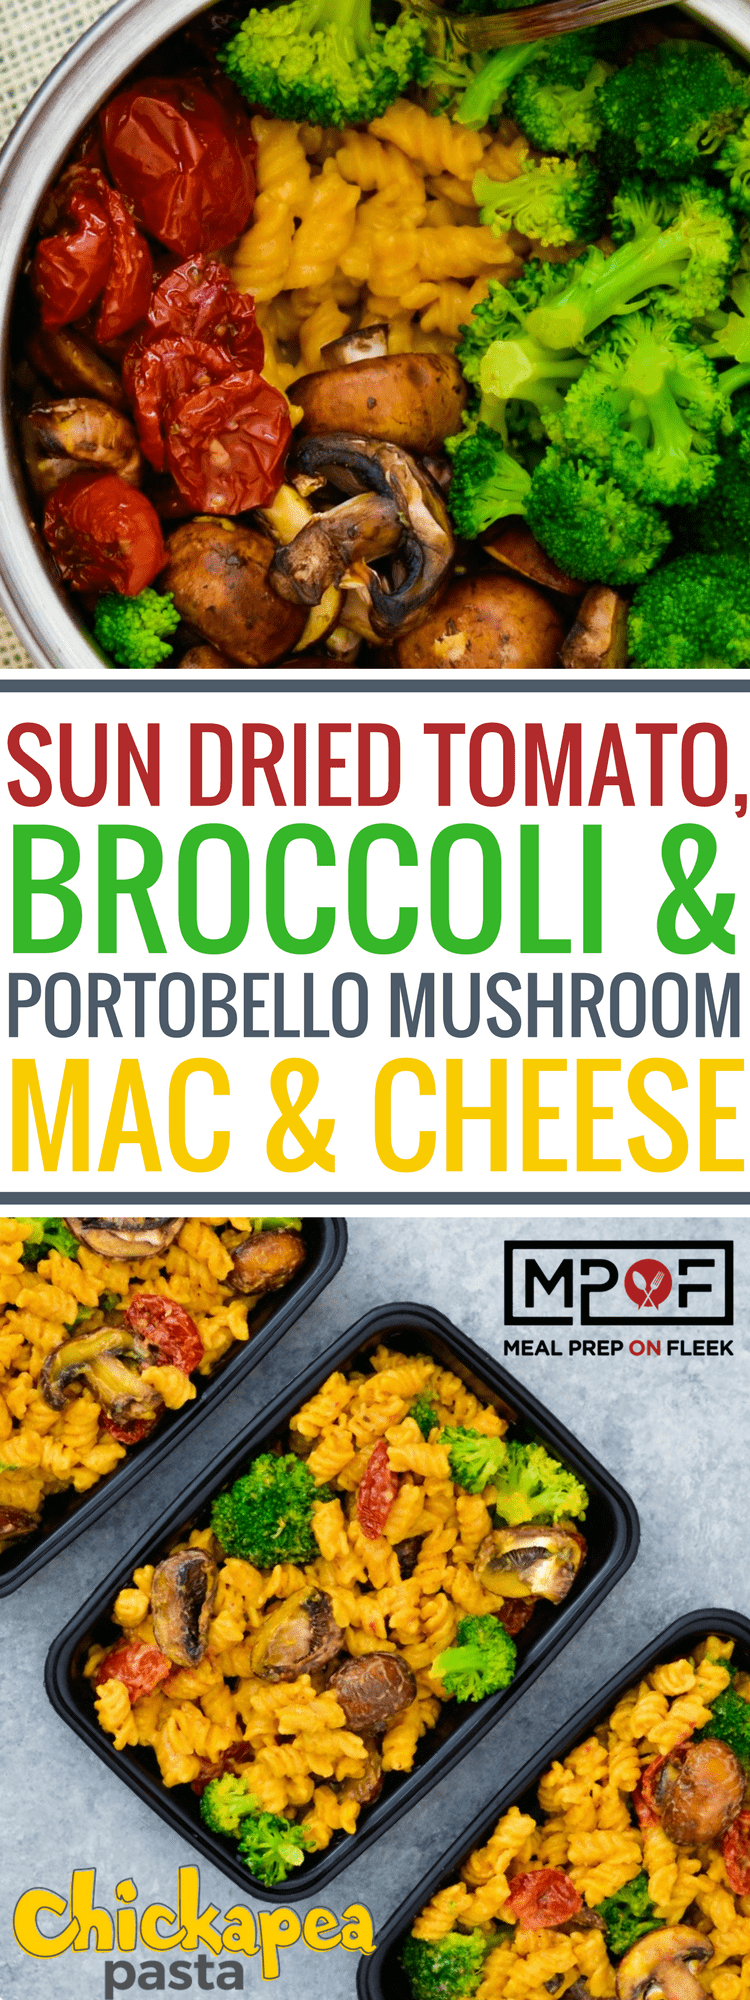 Sun dried tomato, broccoli & portobello mushroom mac & cheese